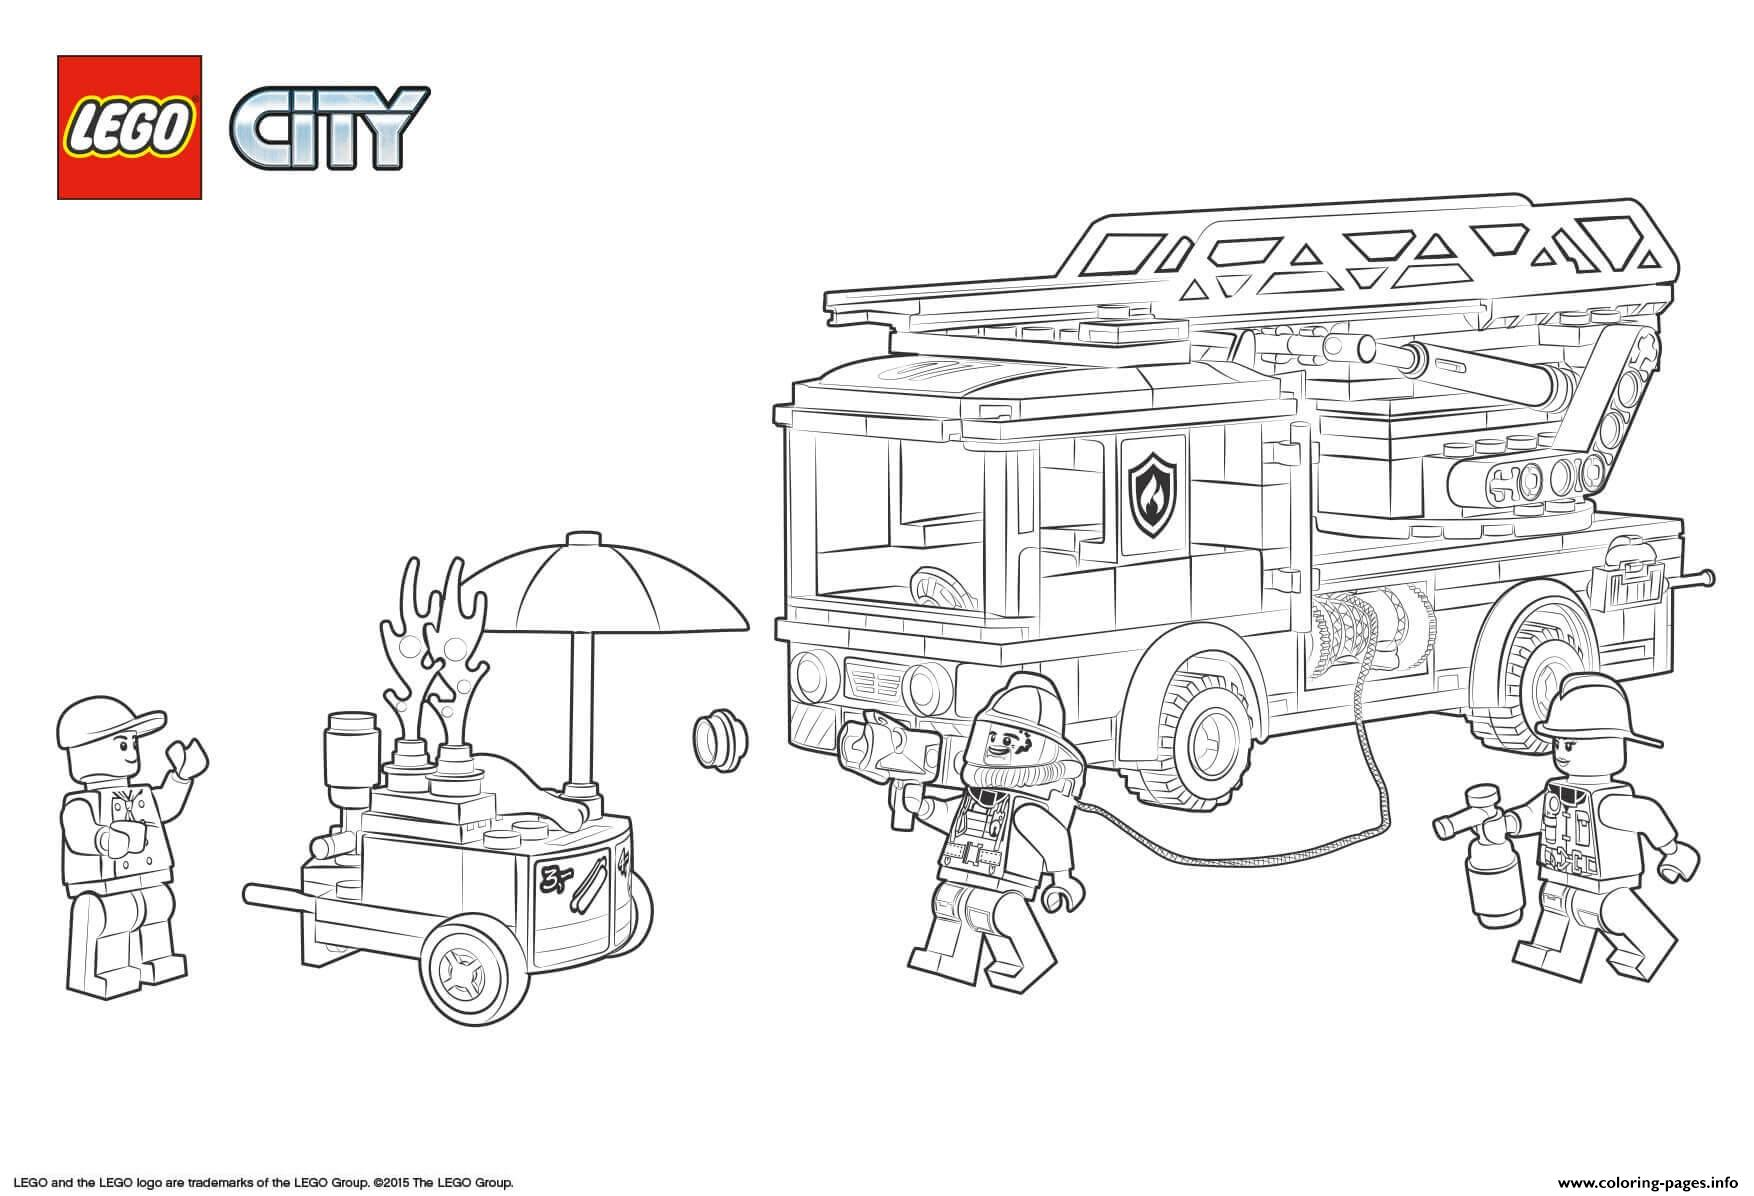 Lego City Fire Station coloring pages